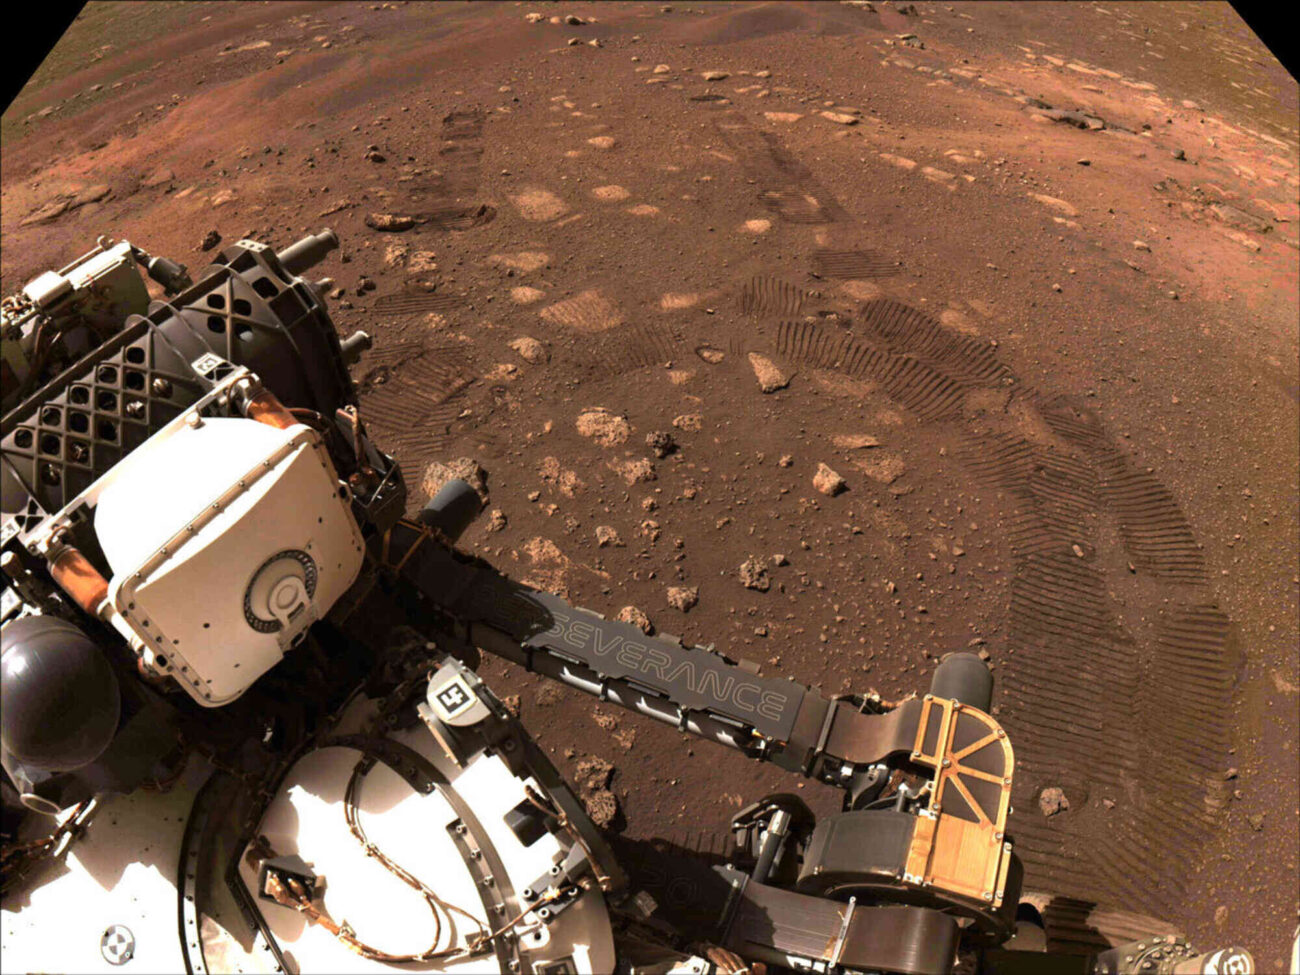 History in space travel has been made. NASA has just announced that they've retrieved sound recordings from the Mars rover. Find out the cool details here.